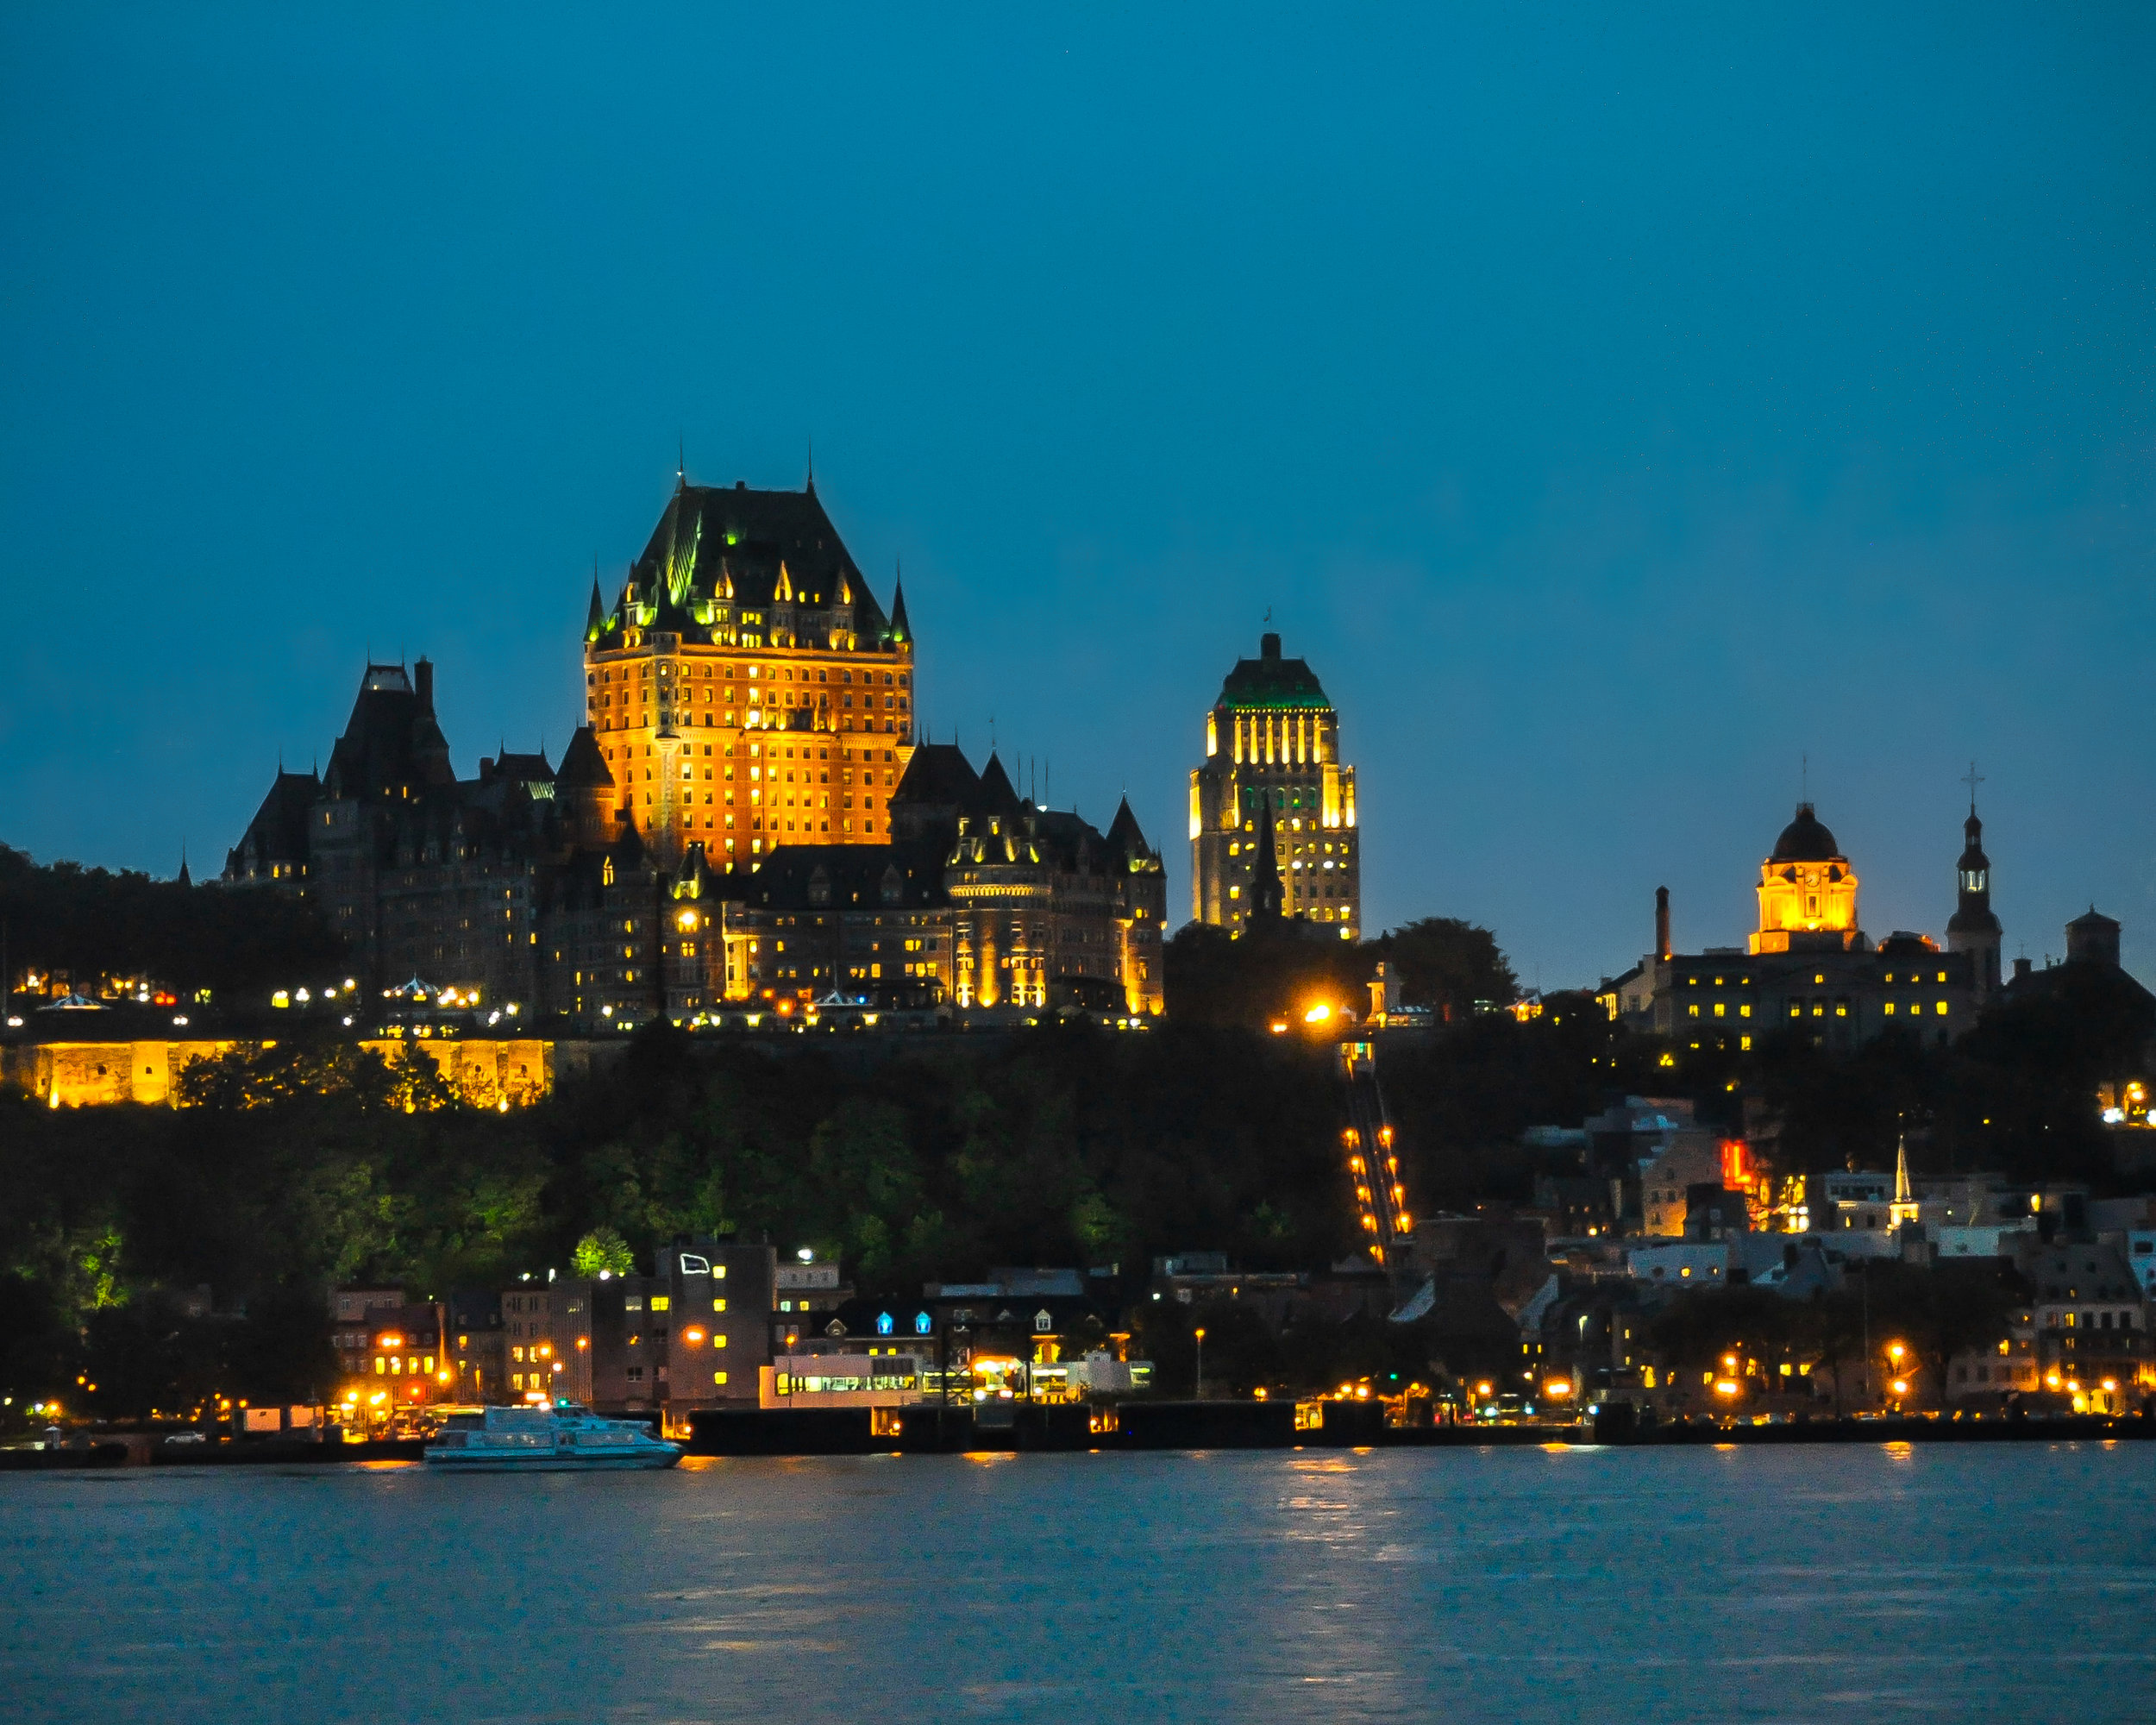 Hotel Frontenac - Quebec City